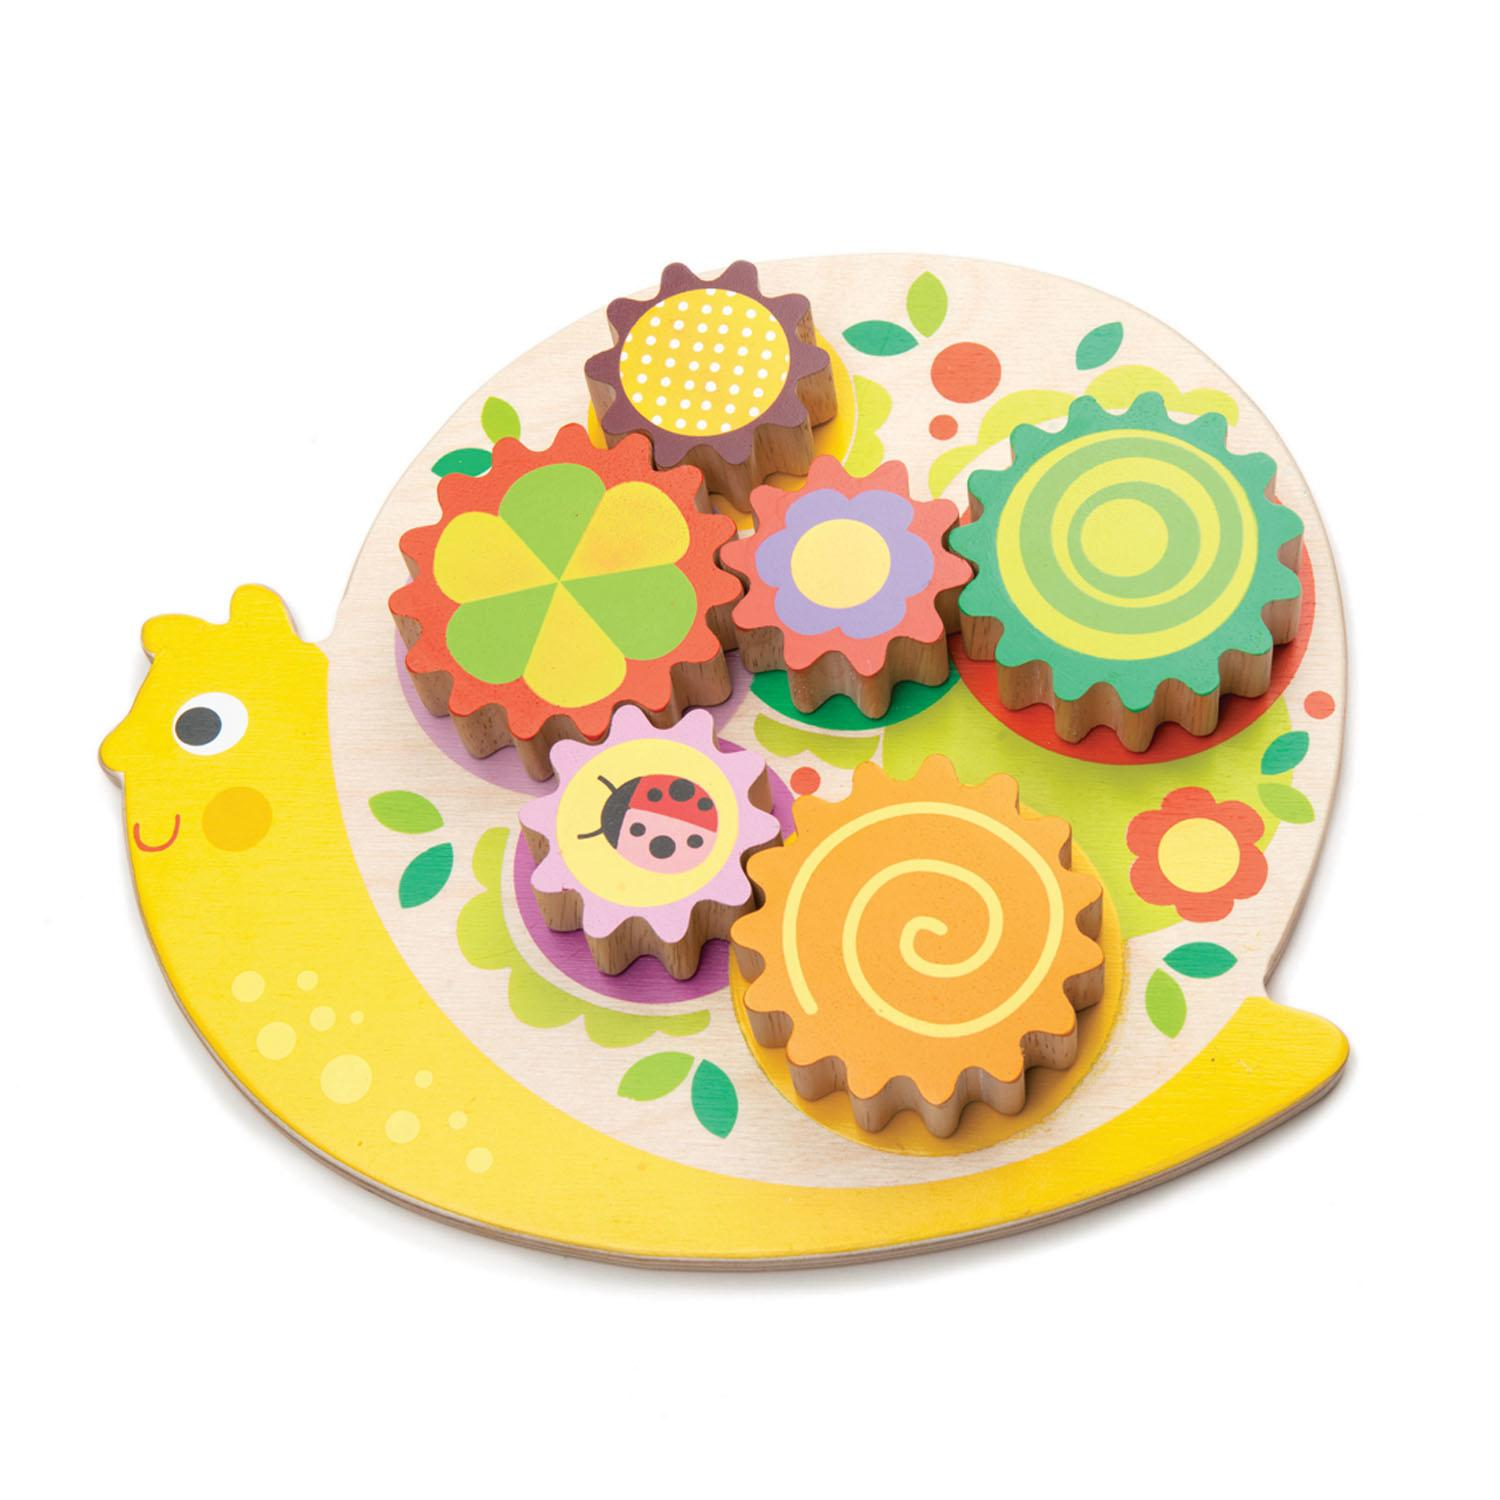 New Wooden Snail with 6 Placeable Colourful Cogs that Turn #3